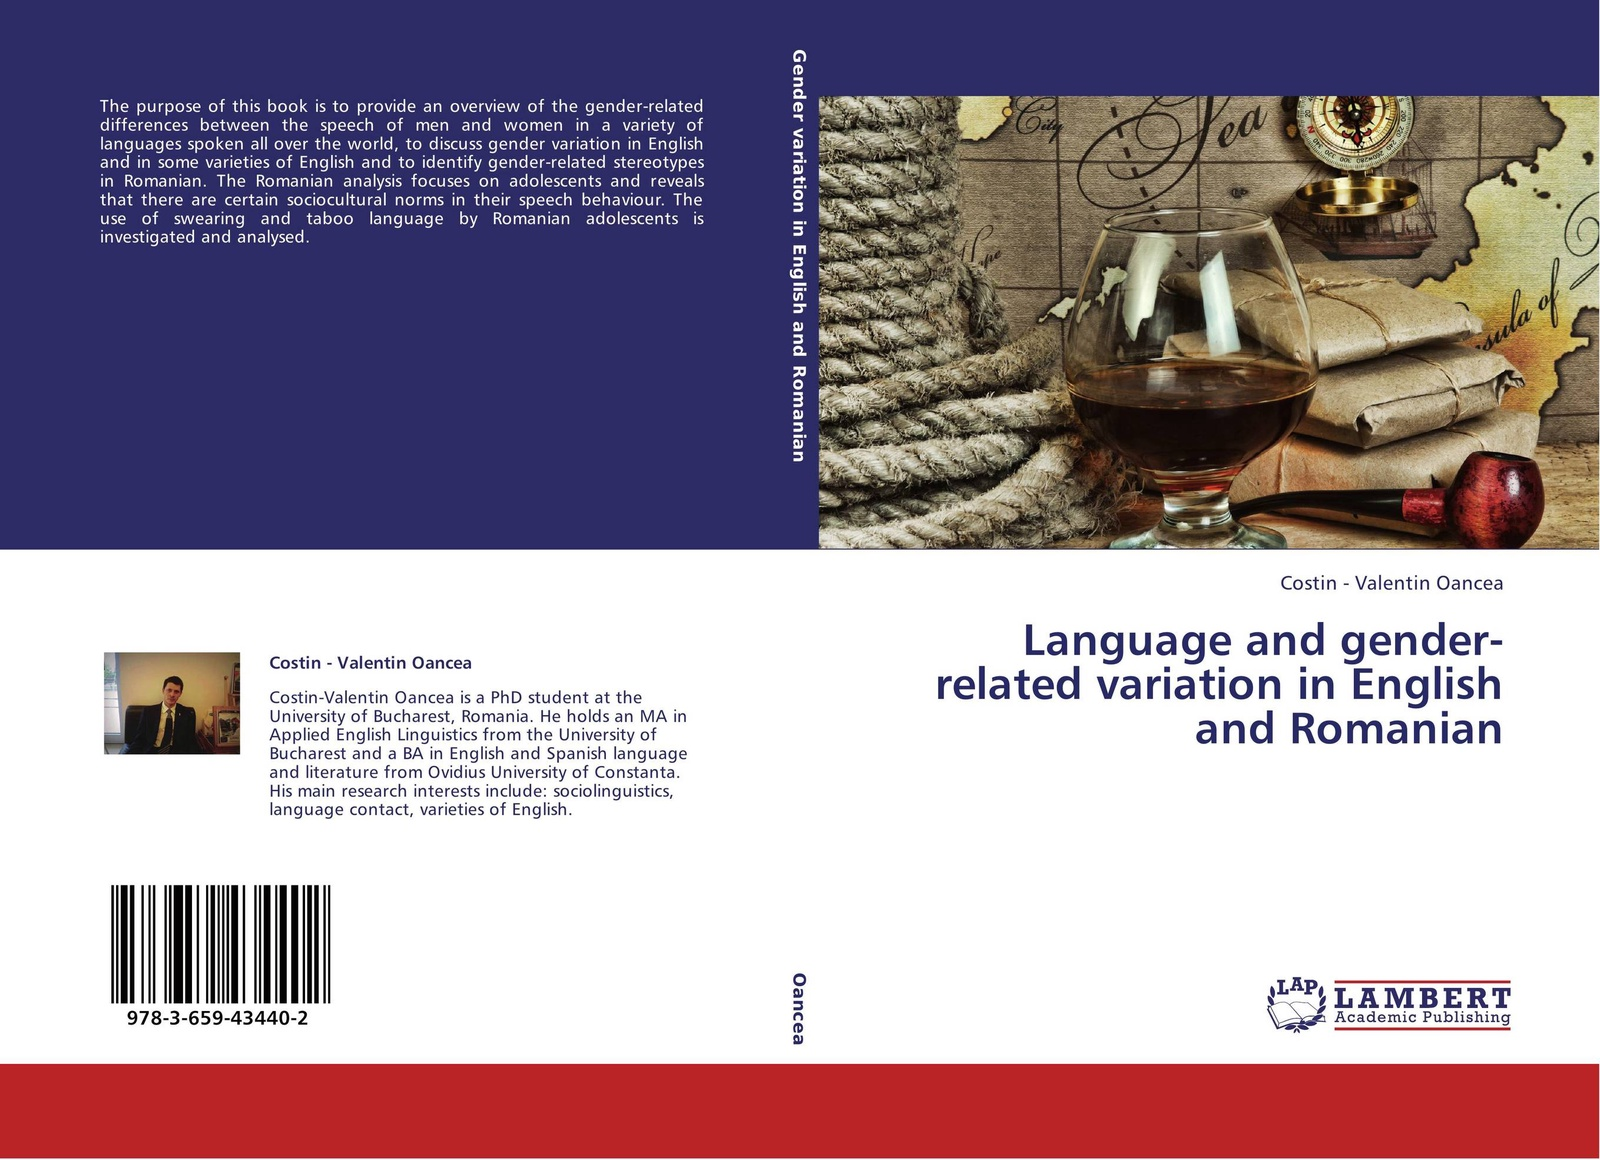 Costin - Valentin Oancea Language and gender-related variation in English and Romanian barnes william an outline of english speech craft